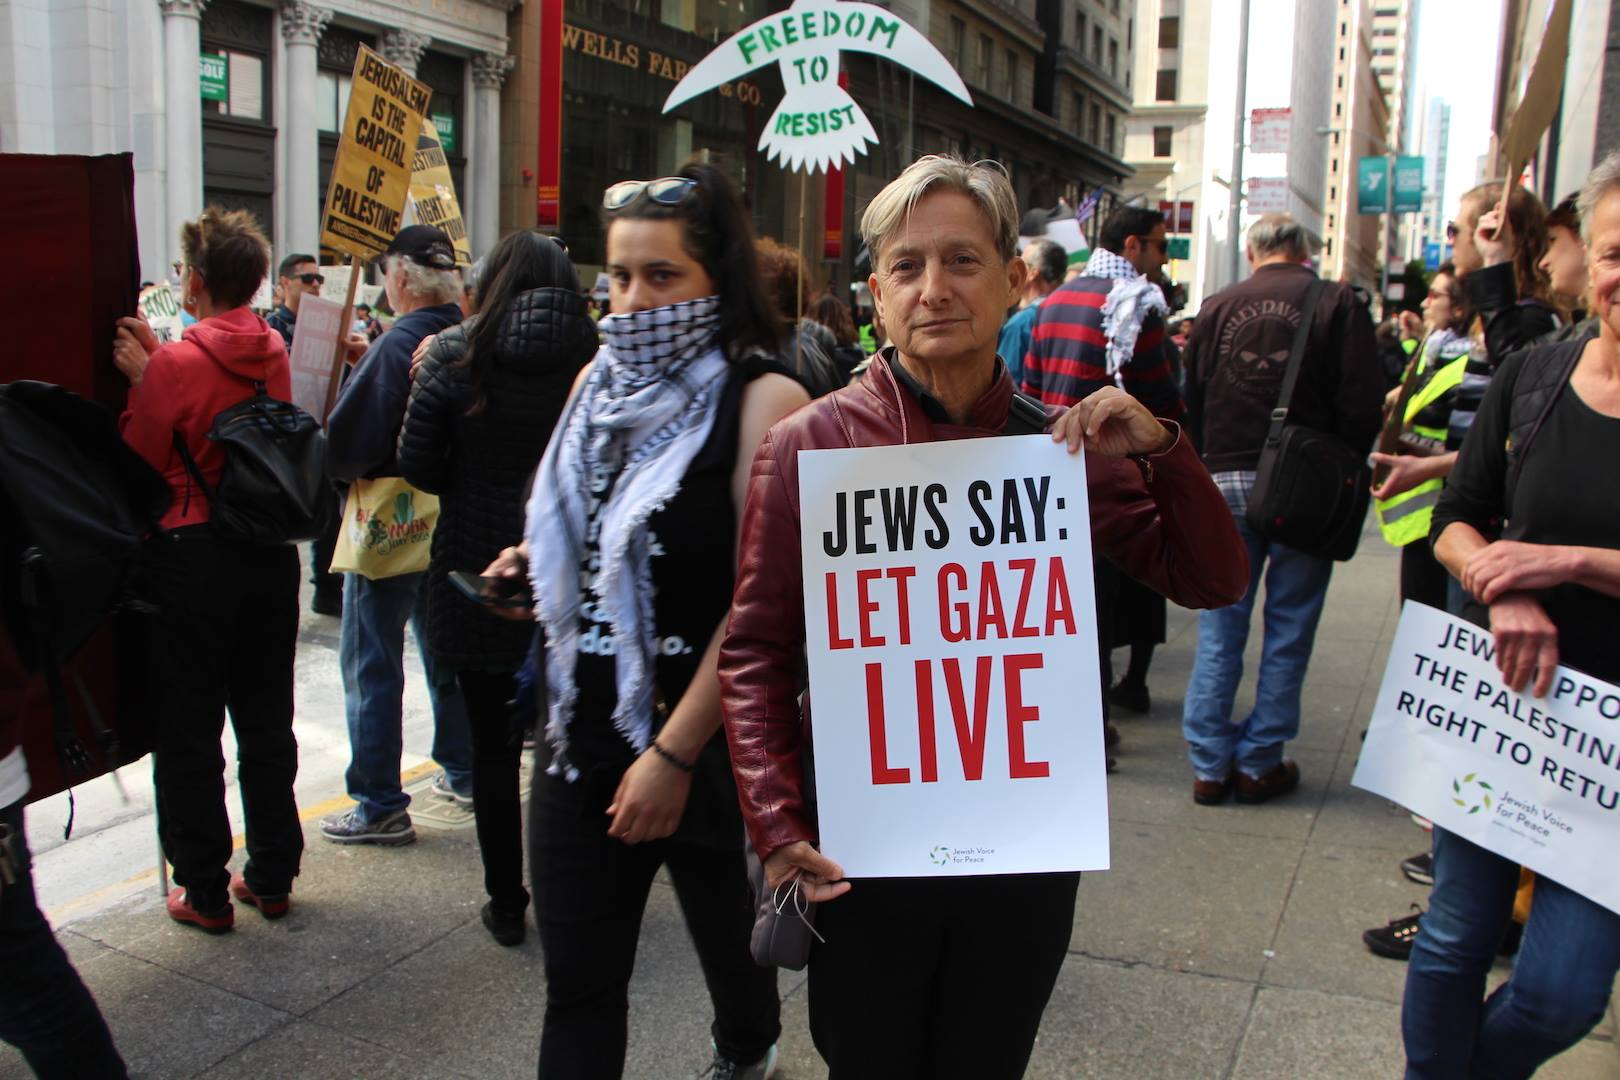 Scholar, author and member of JVP's academic council, Judith Butler, protests the killing of Palestinians in Gaza. Photo credit: jewishvoiceforpeace.org